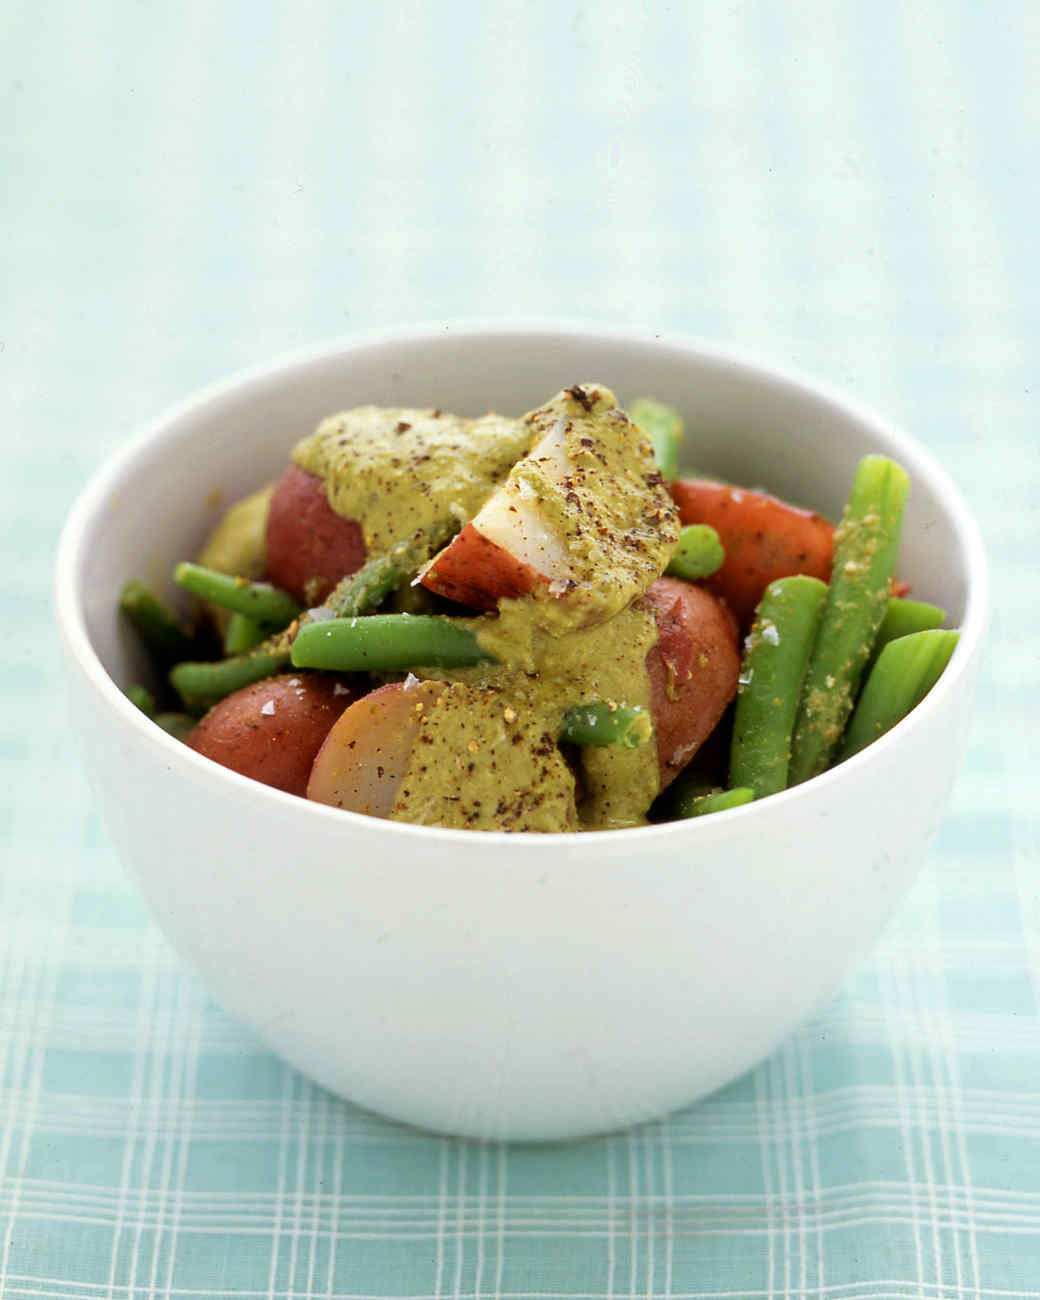 edf_0605_greenbeansalad.jpg